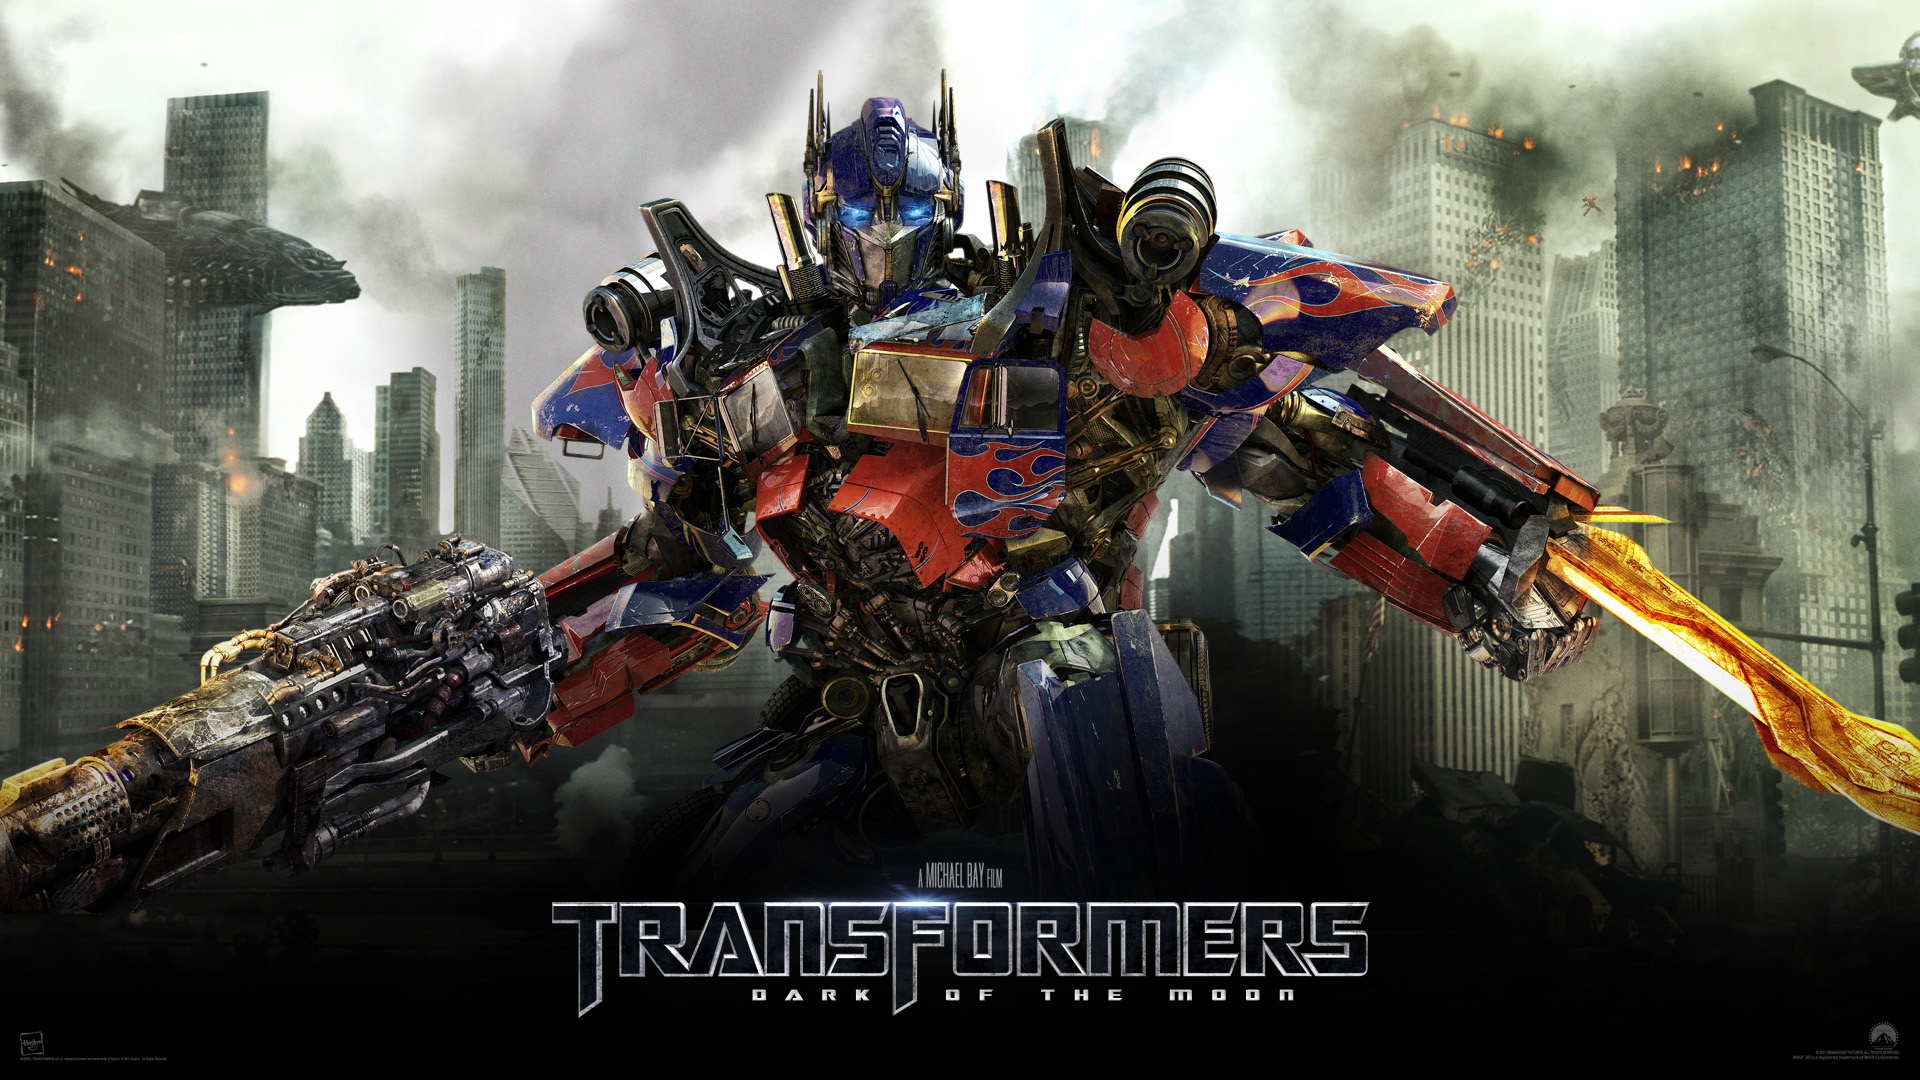 Wallpapers Transformer 4 Group (79+)